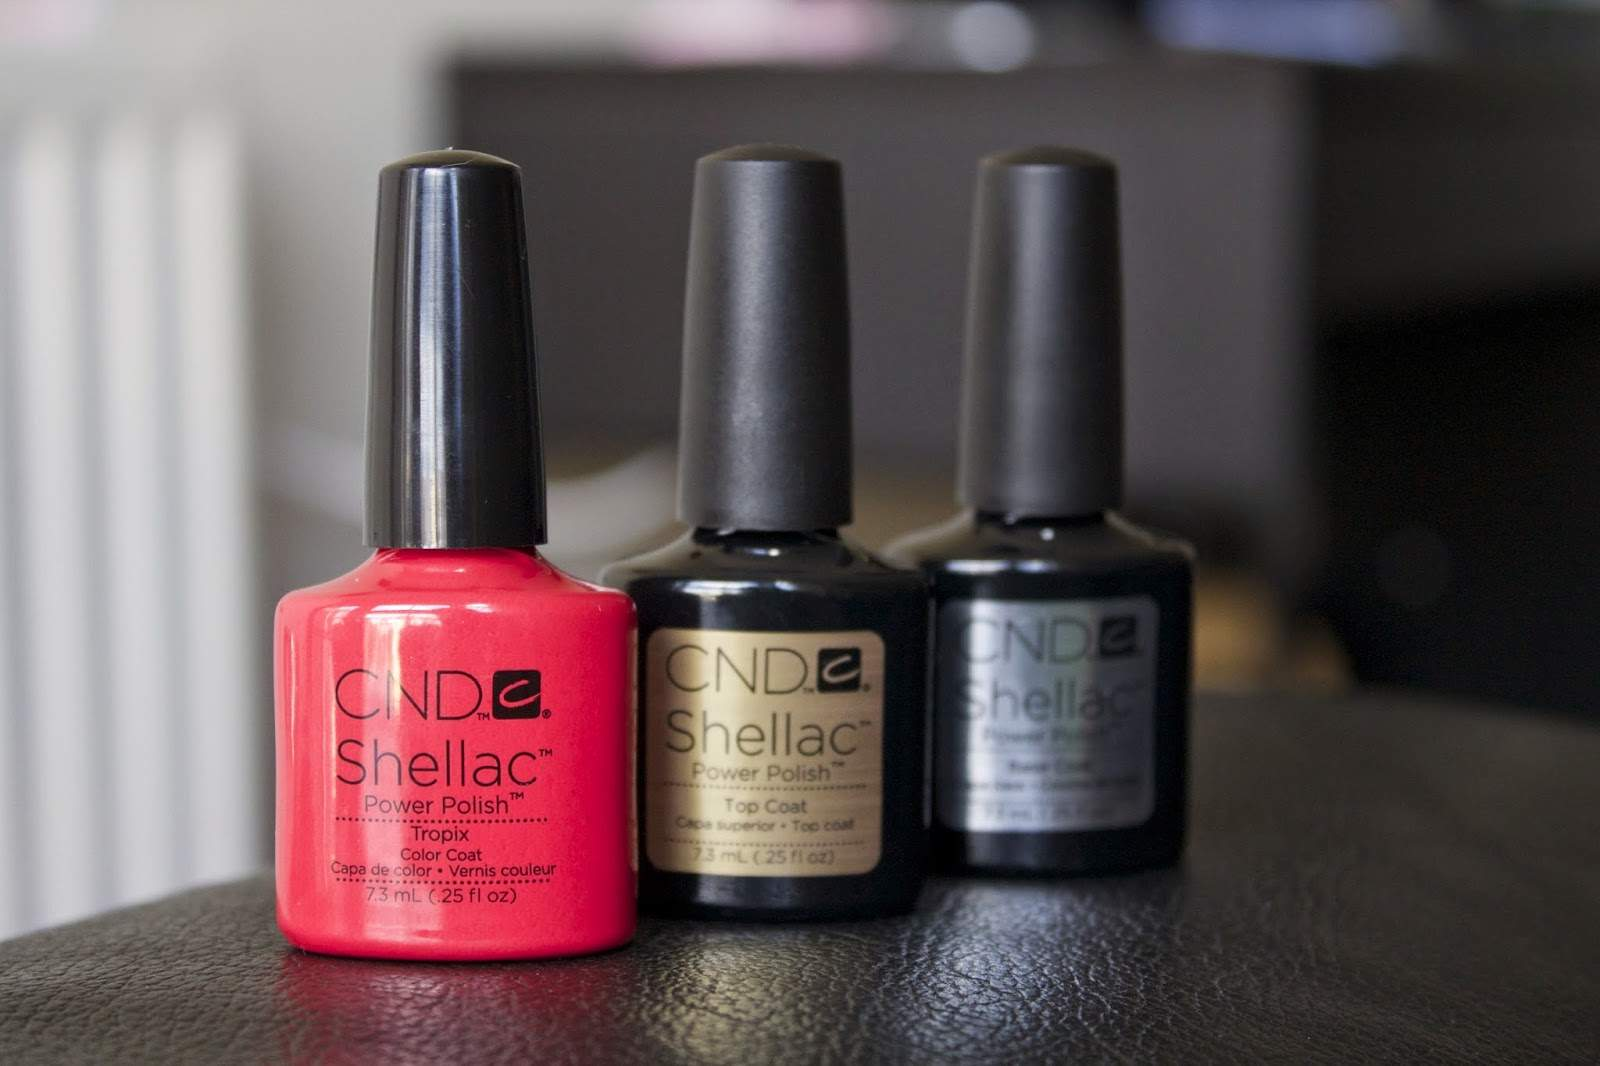 CND Shellac Gel Nail Polish Tropix colour, Top coat and Base coat